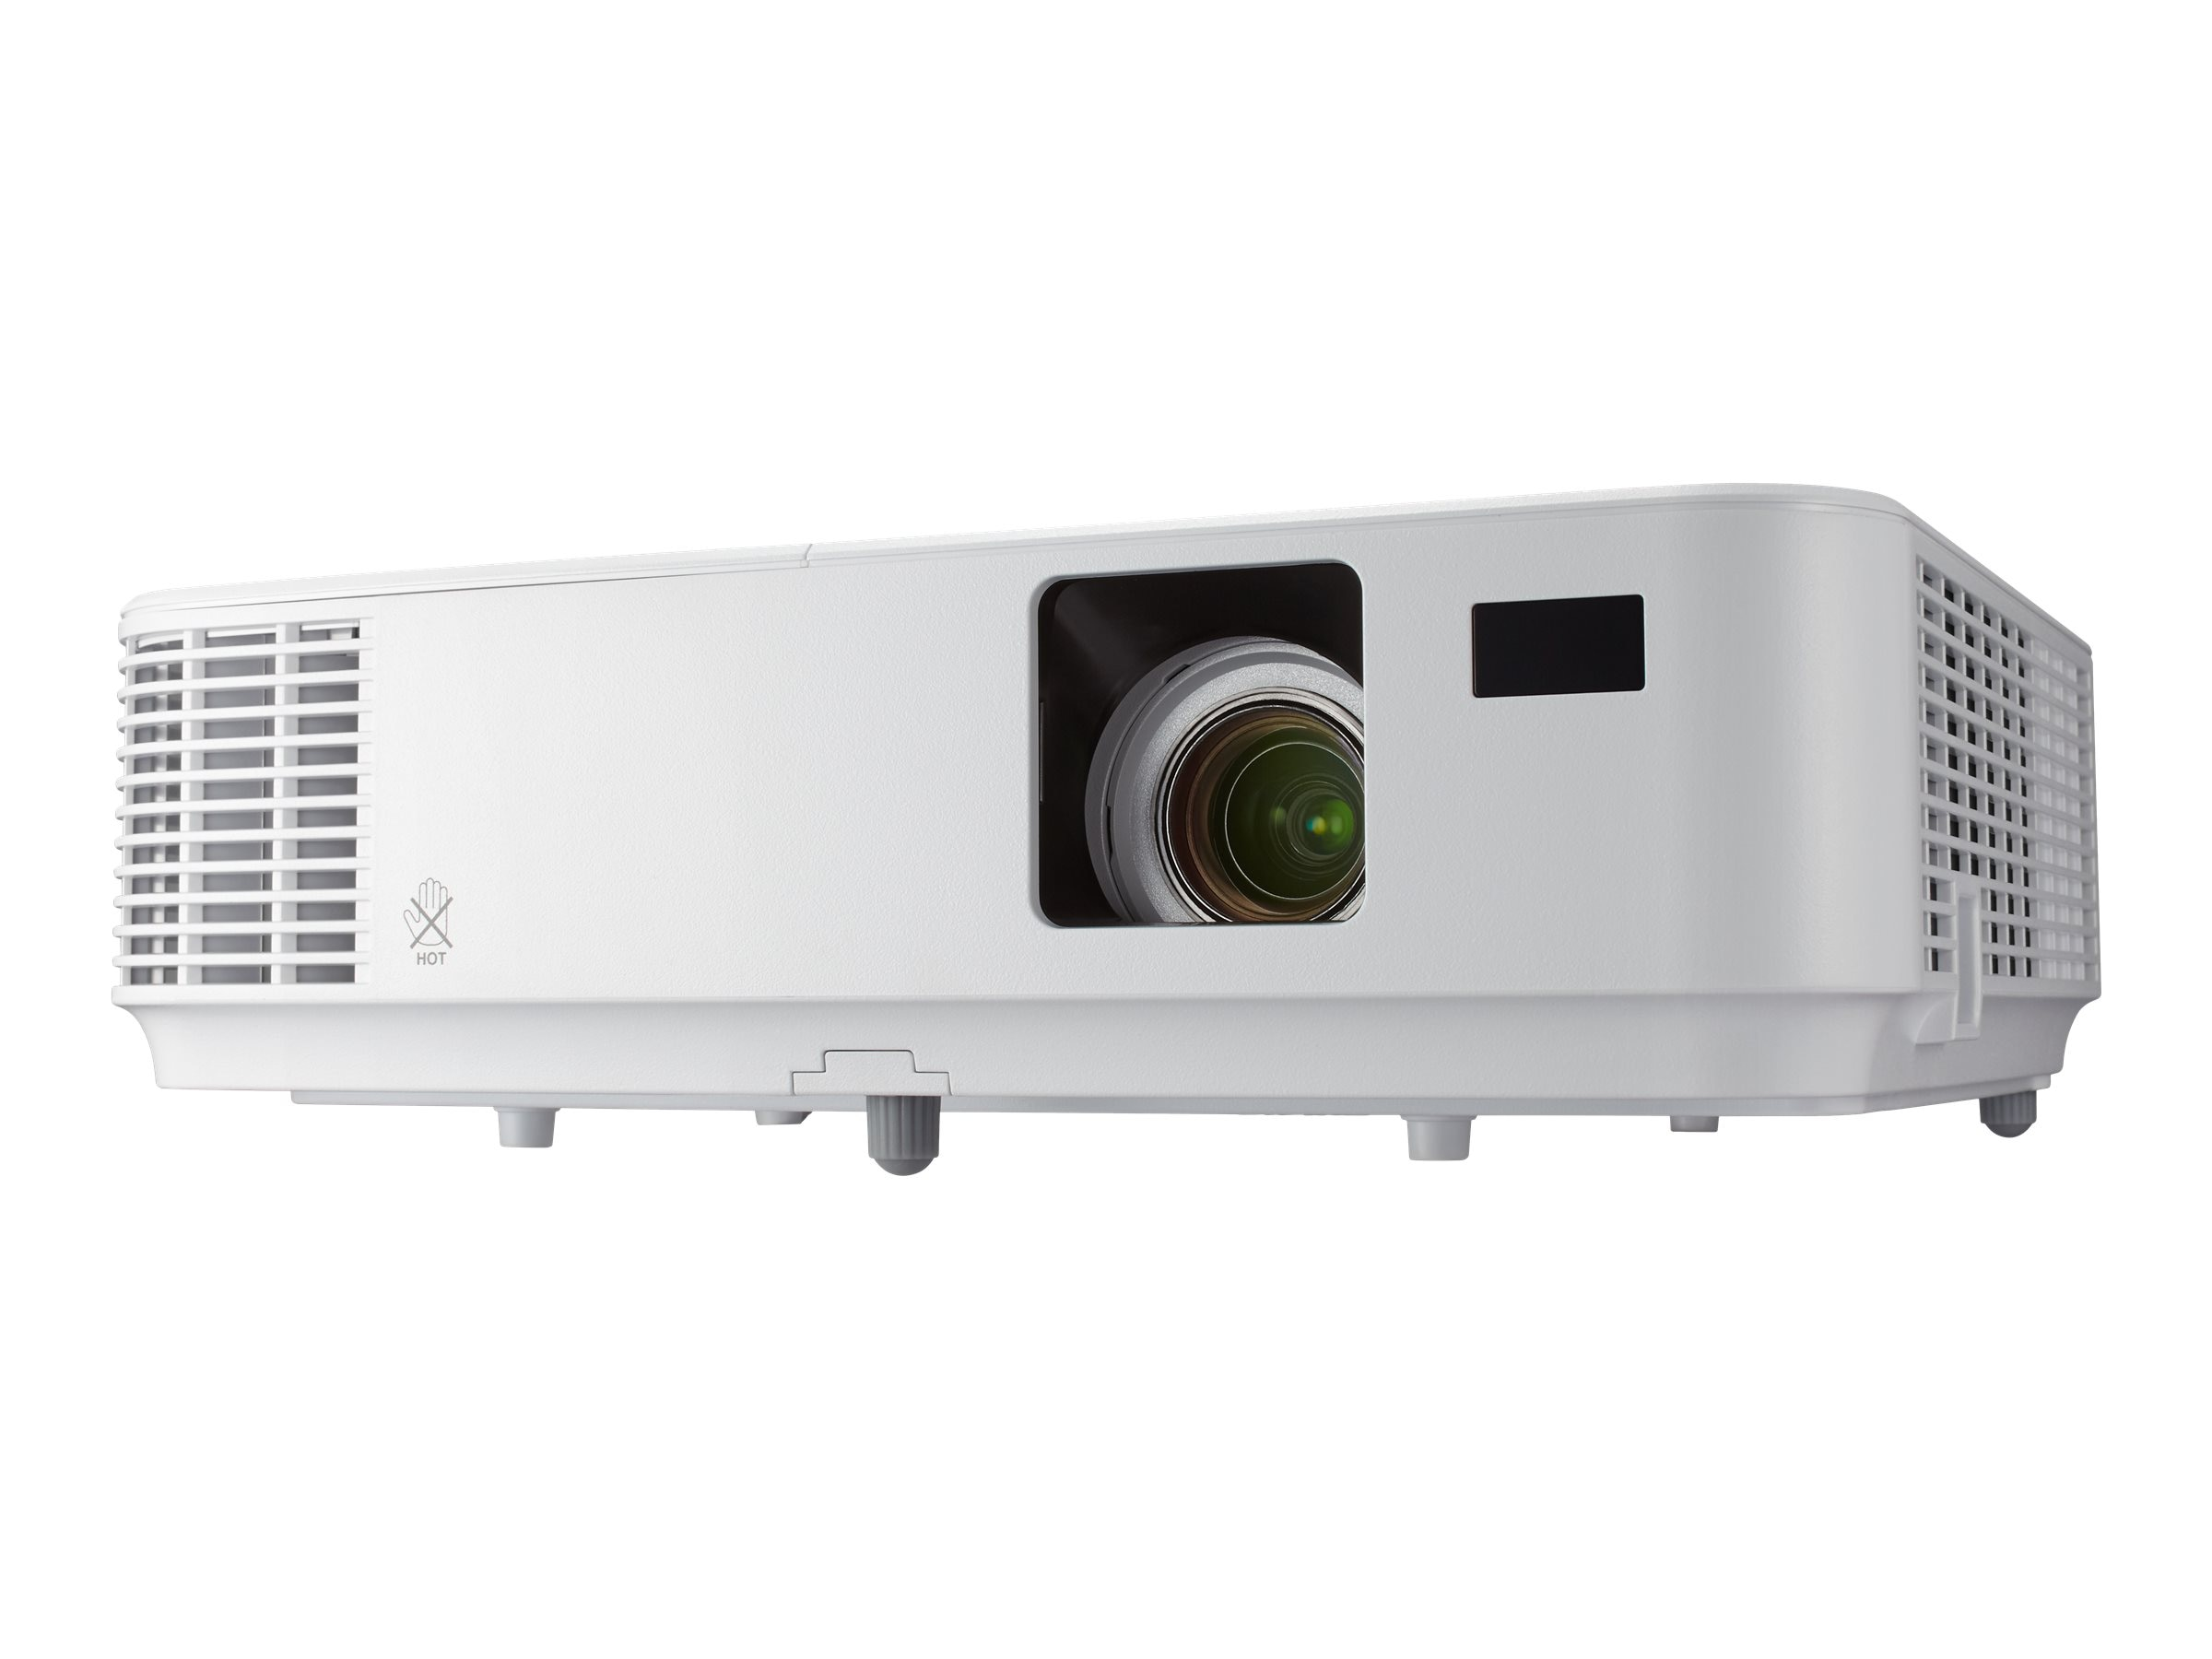 NEC VE303 SVGA DLP Projector, 3000 Lumens, White, NP-VE303